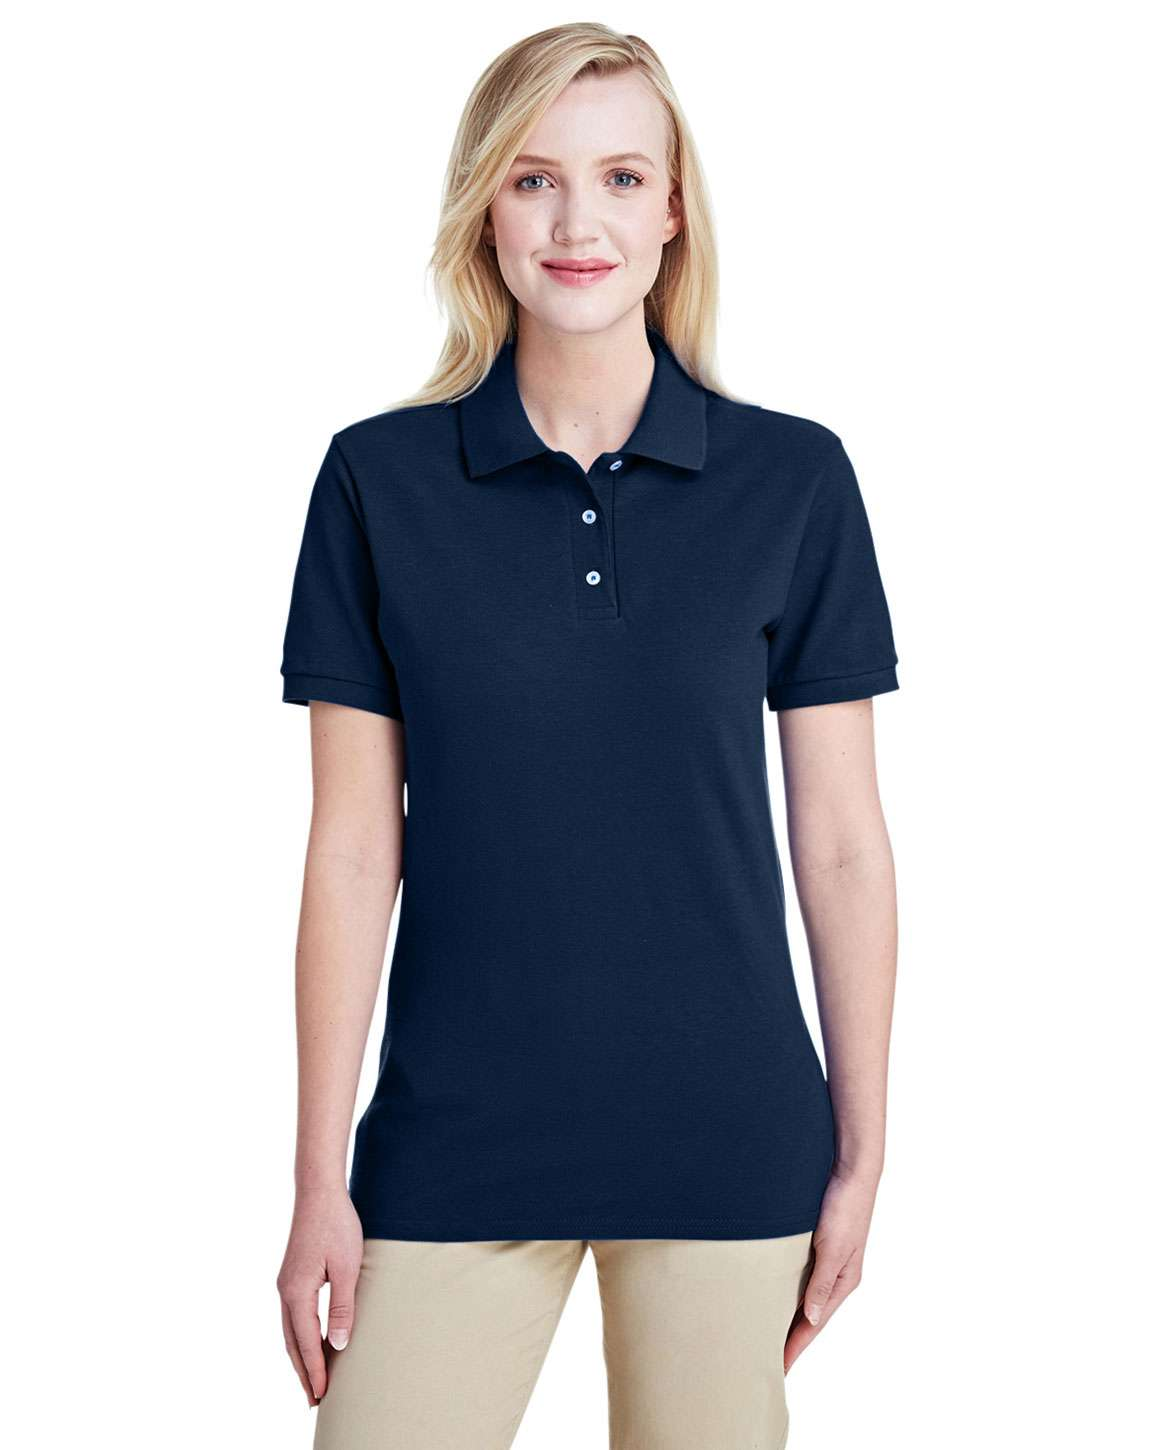 Jerzees 443WR Ladies Premium 100% Ringspun Cotton Pique Polo